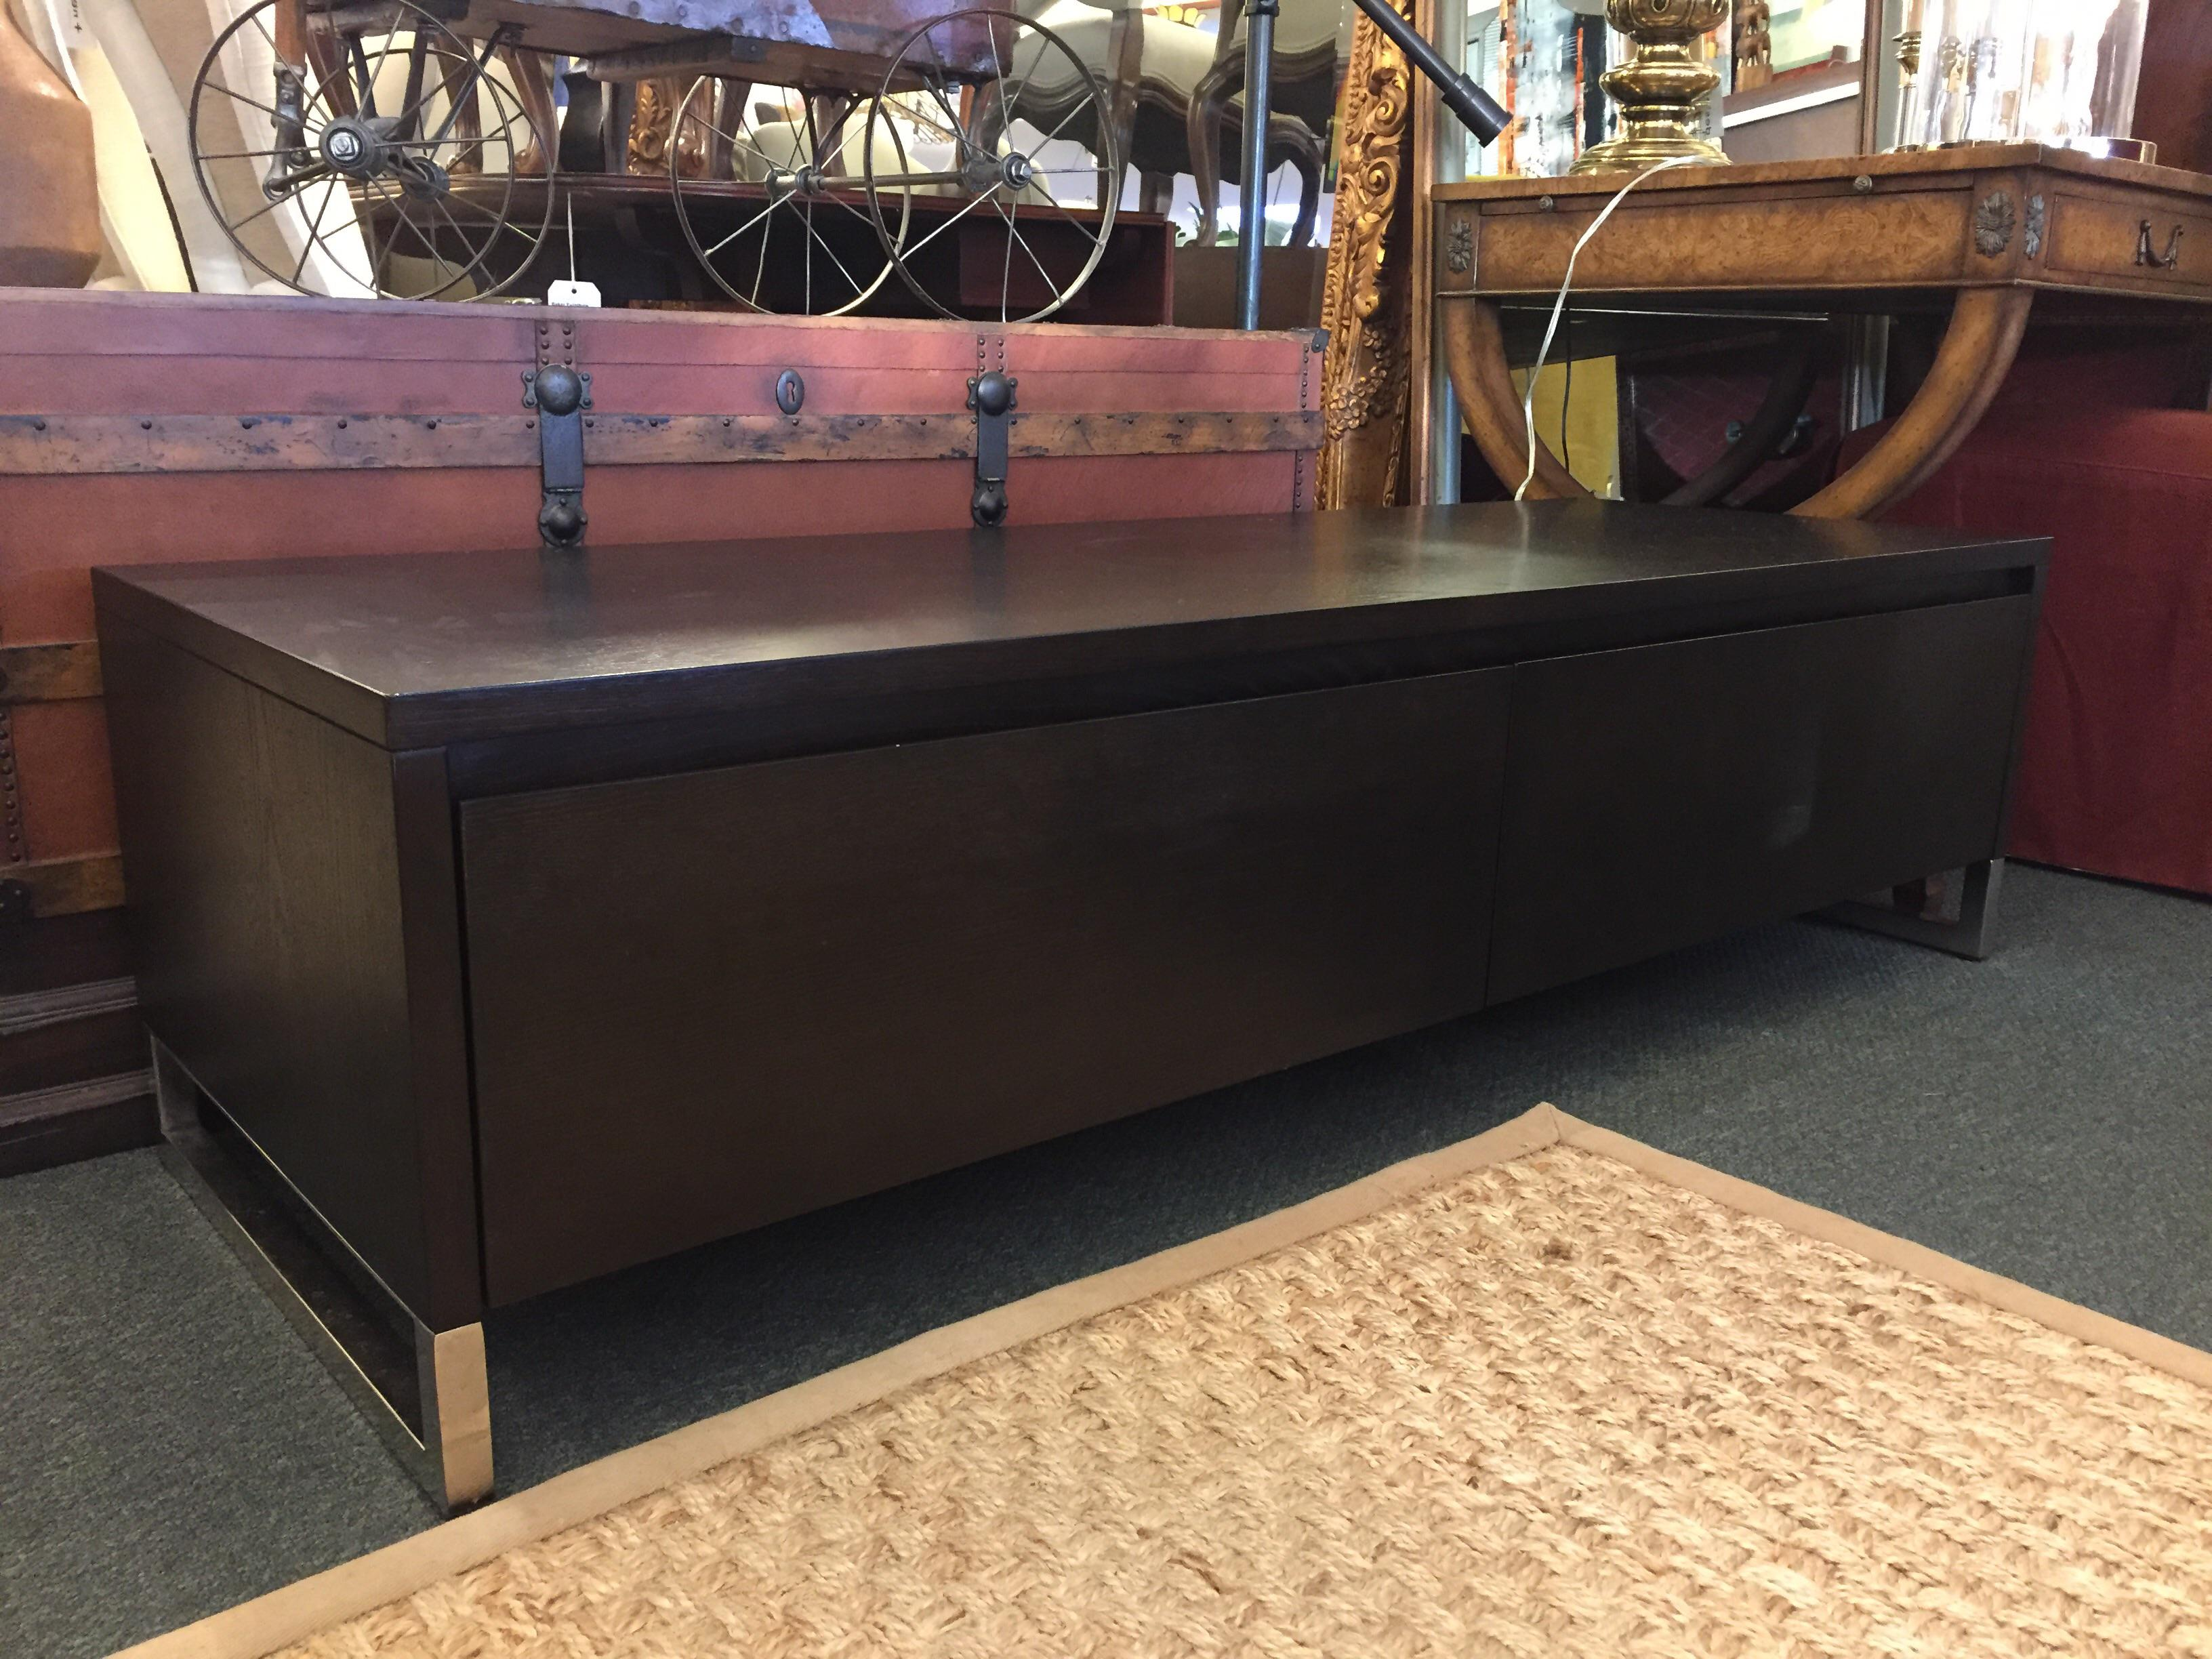 Offered Is A Long And Low Media Console From West Elm. Rich Dark Finish With